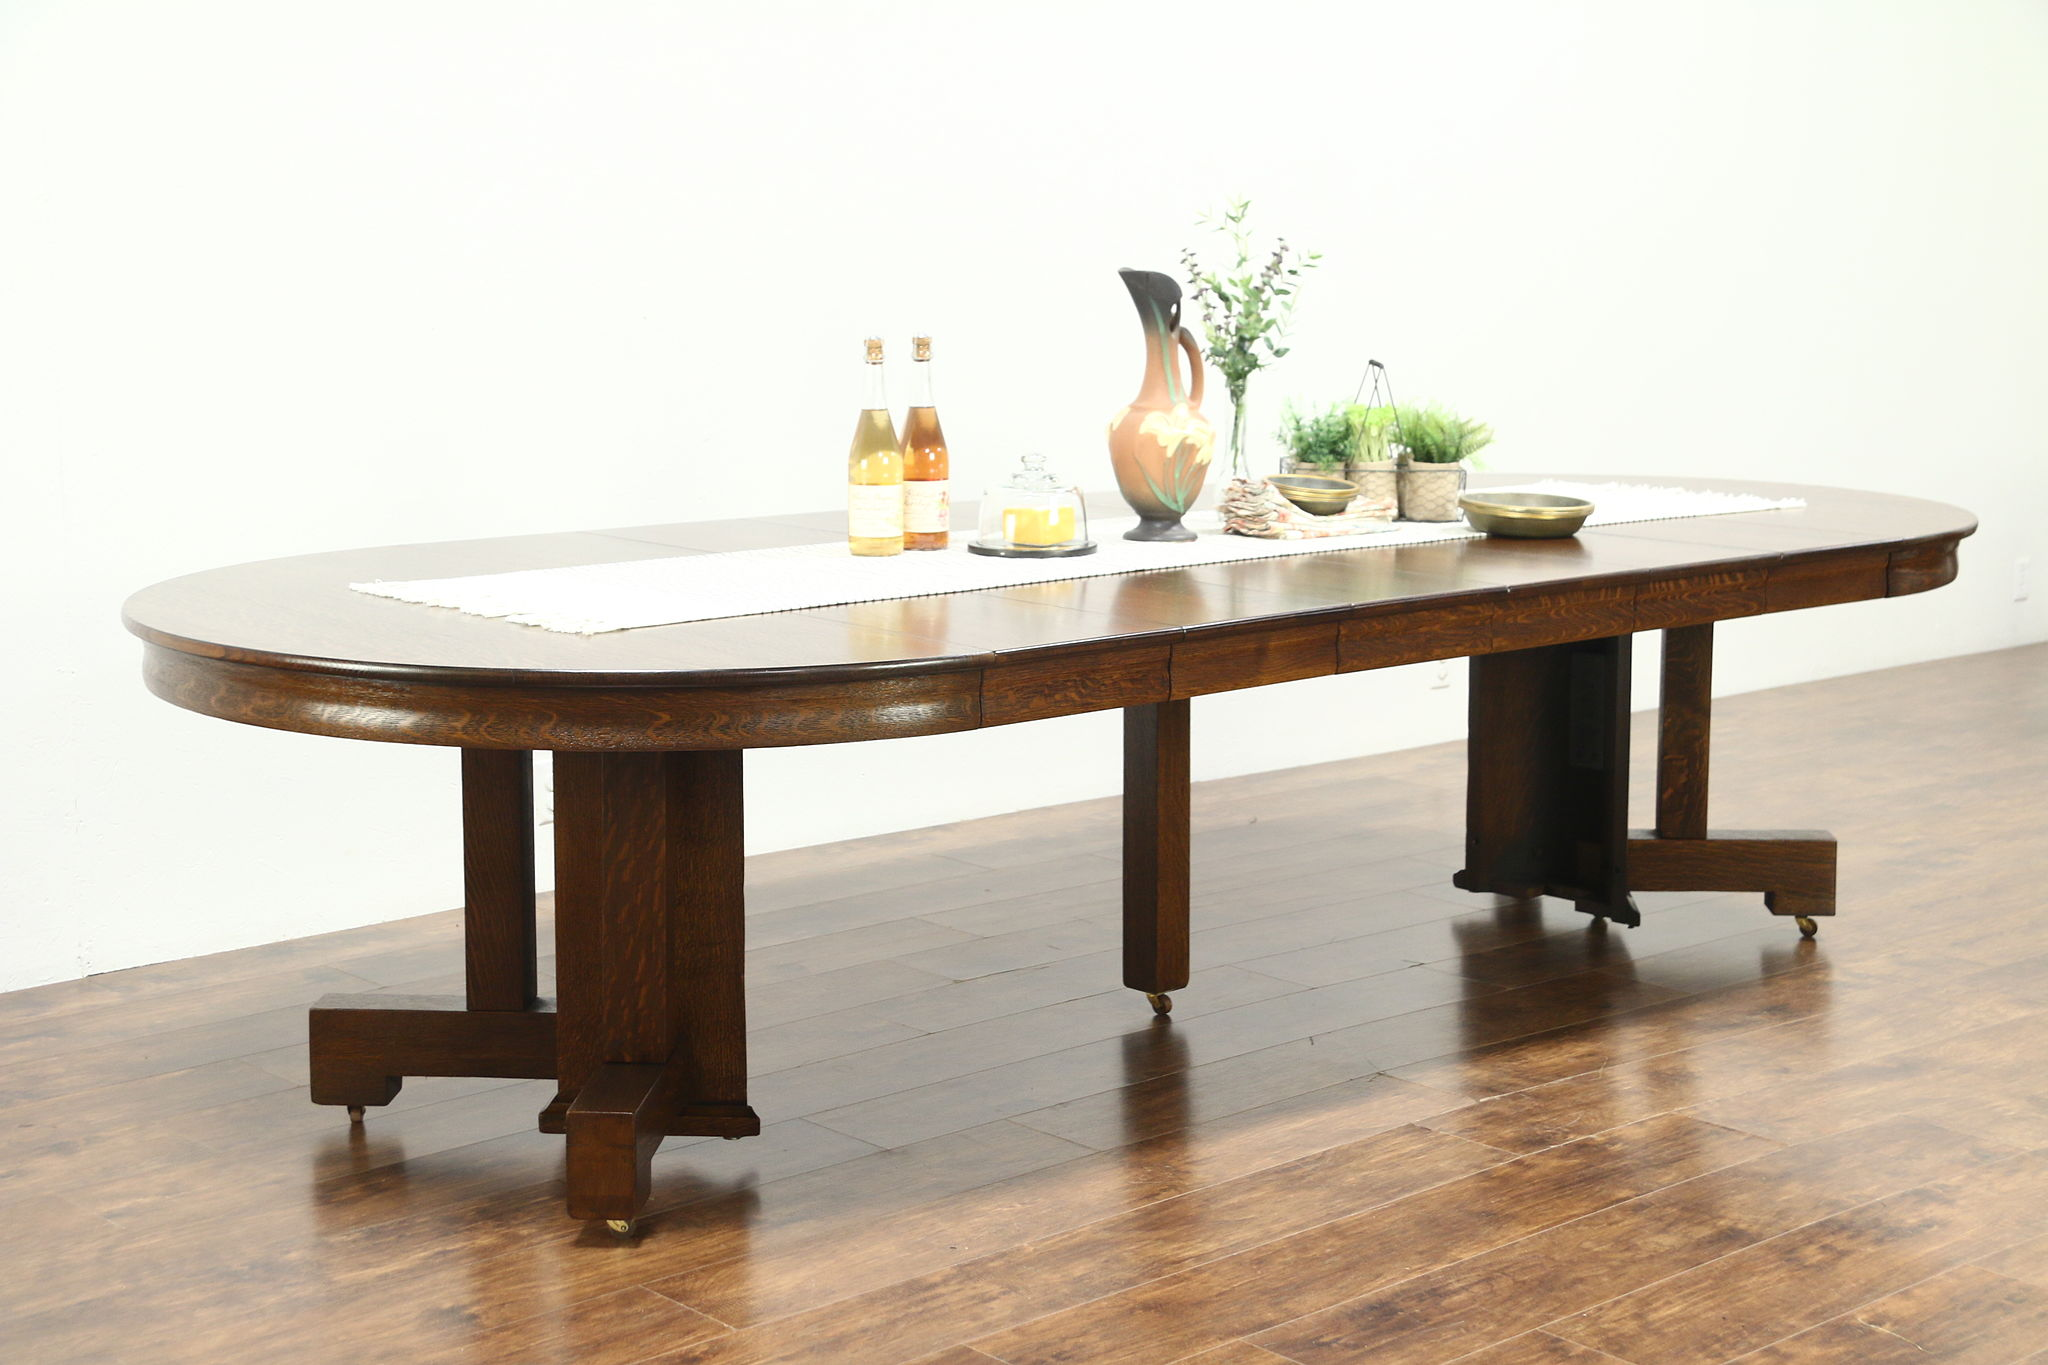 Fullsize Of Round Dining Table For 6